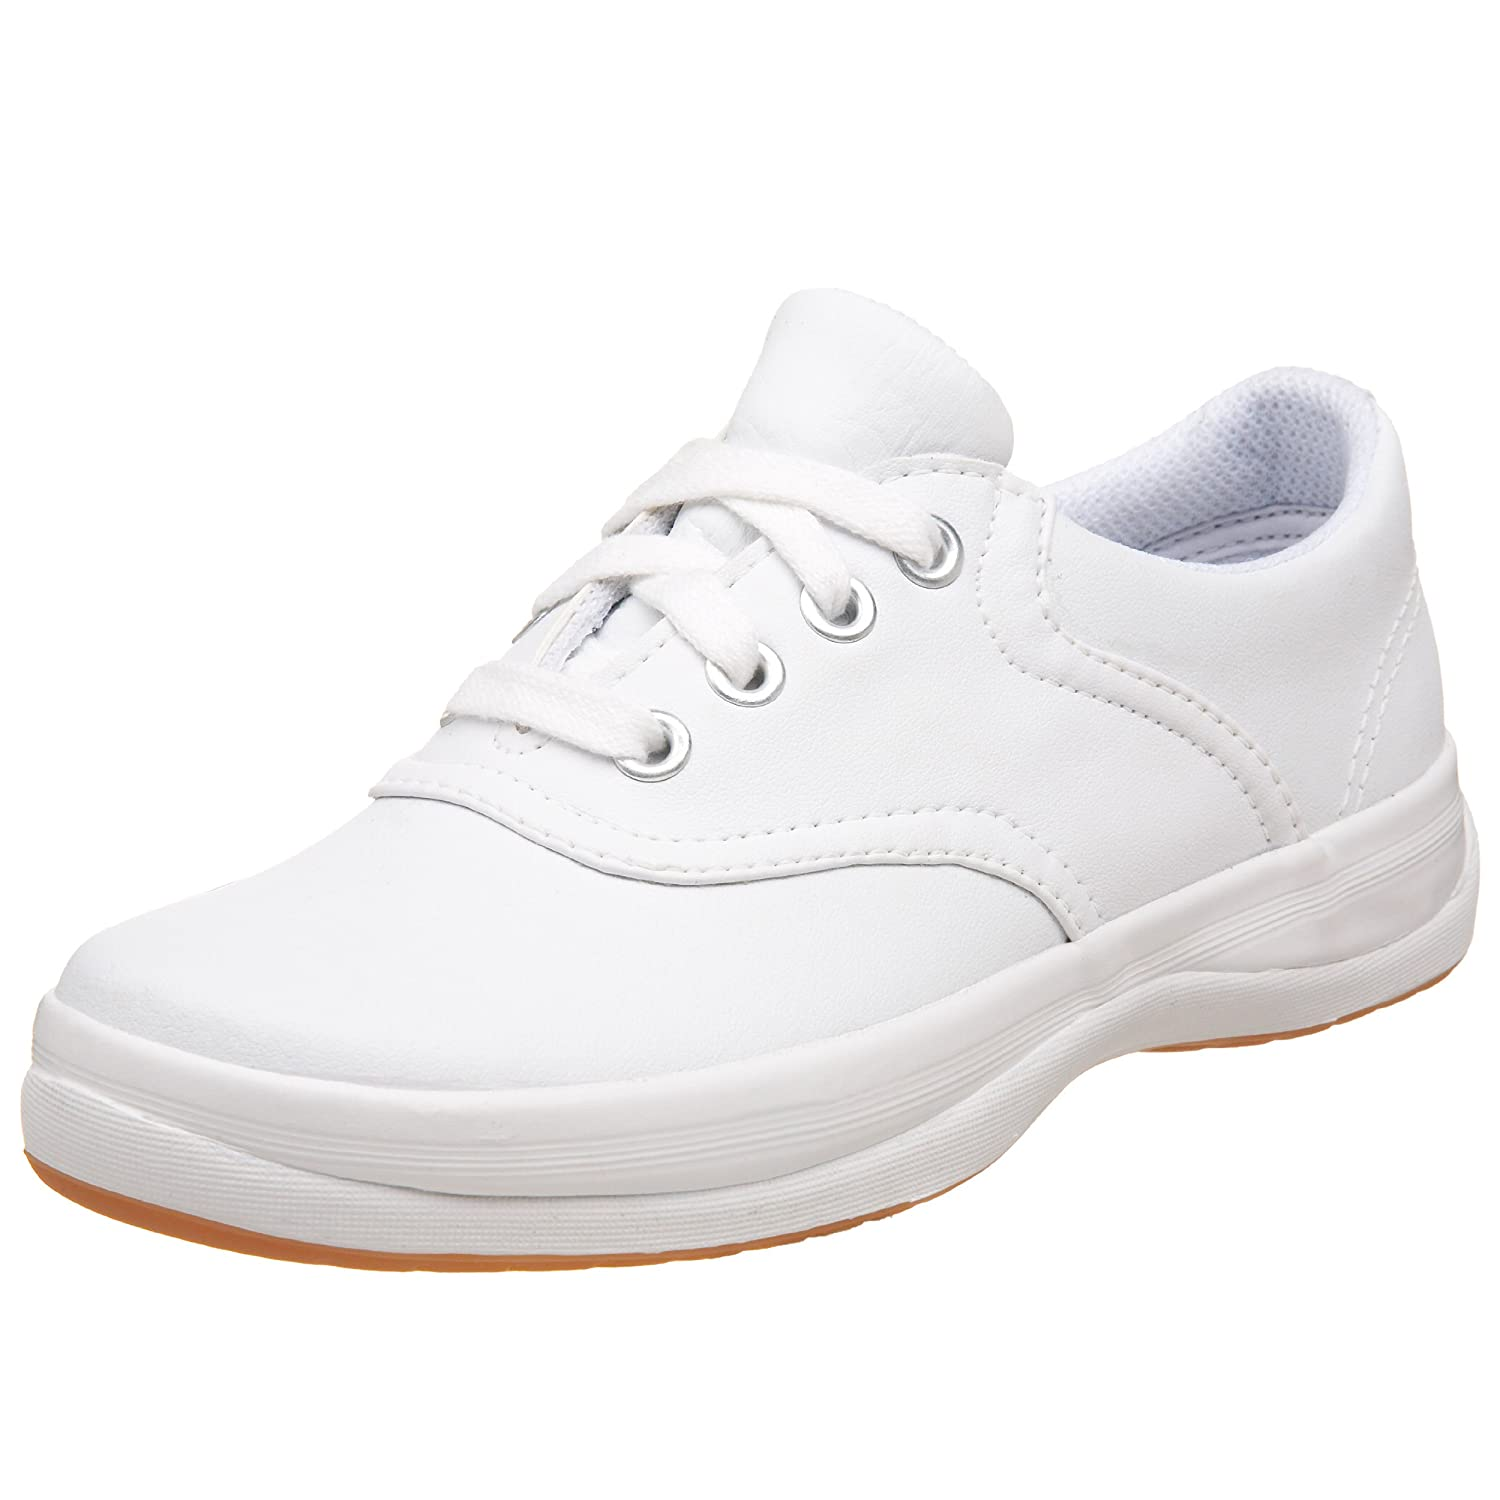 487336af6f5 Amazon.com  Keds School Days II Sneaker